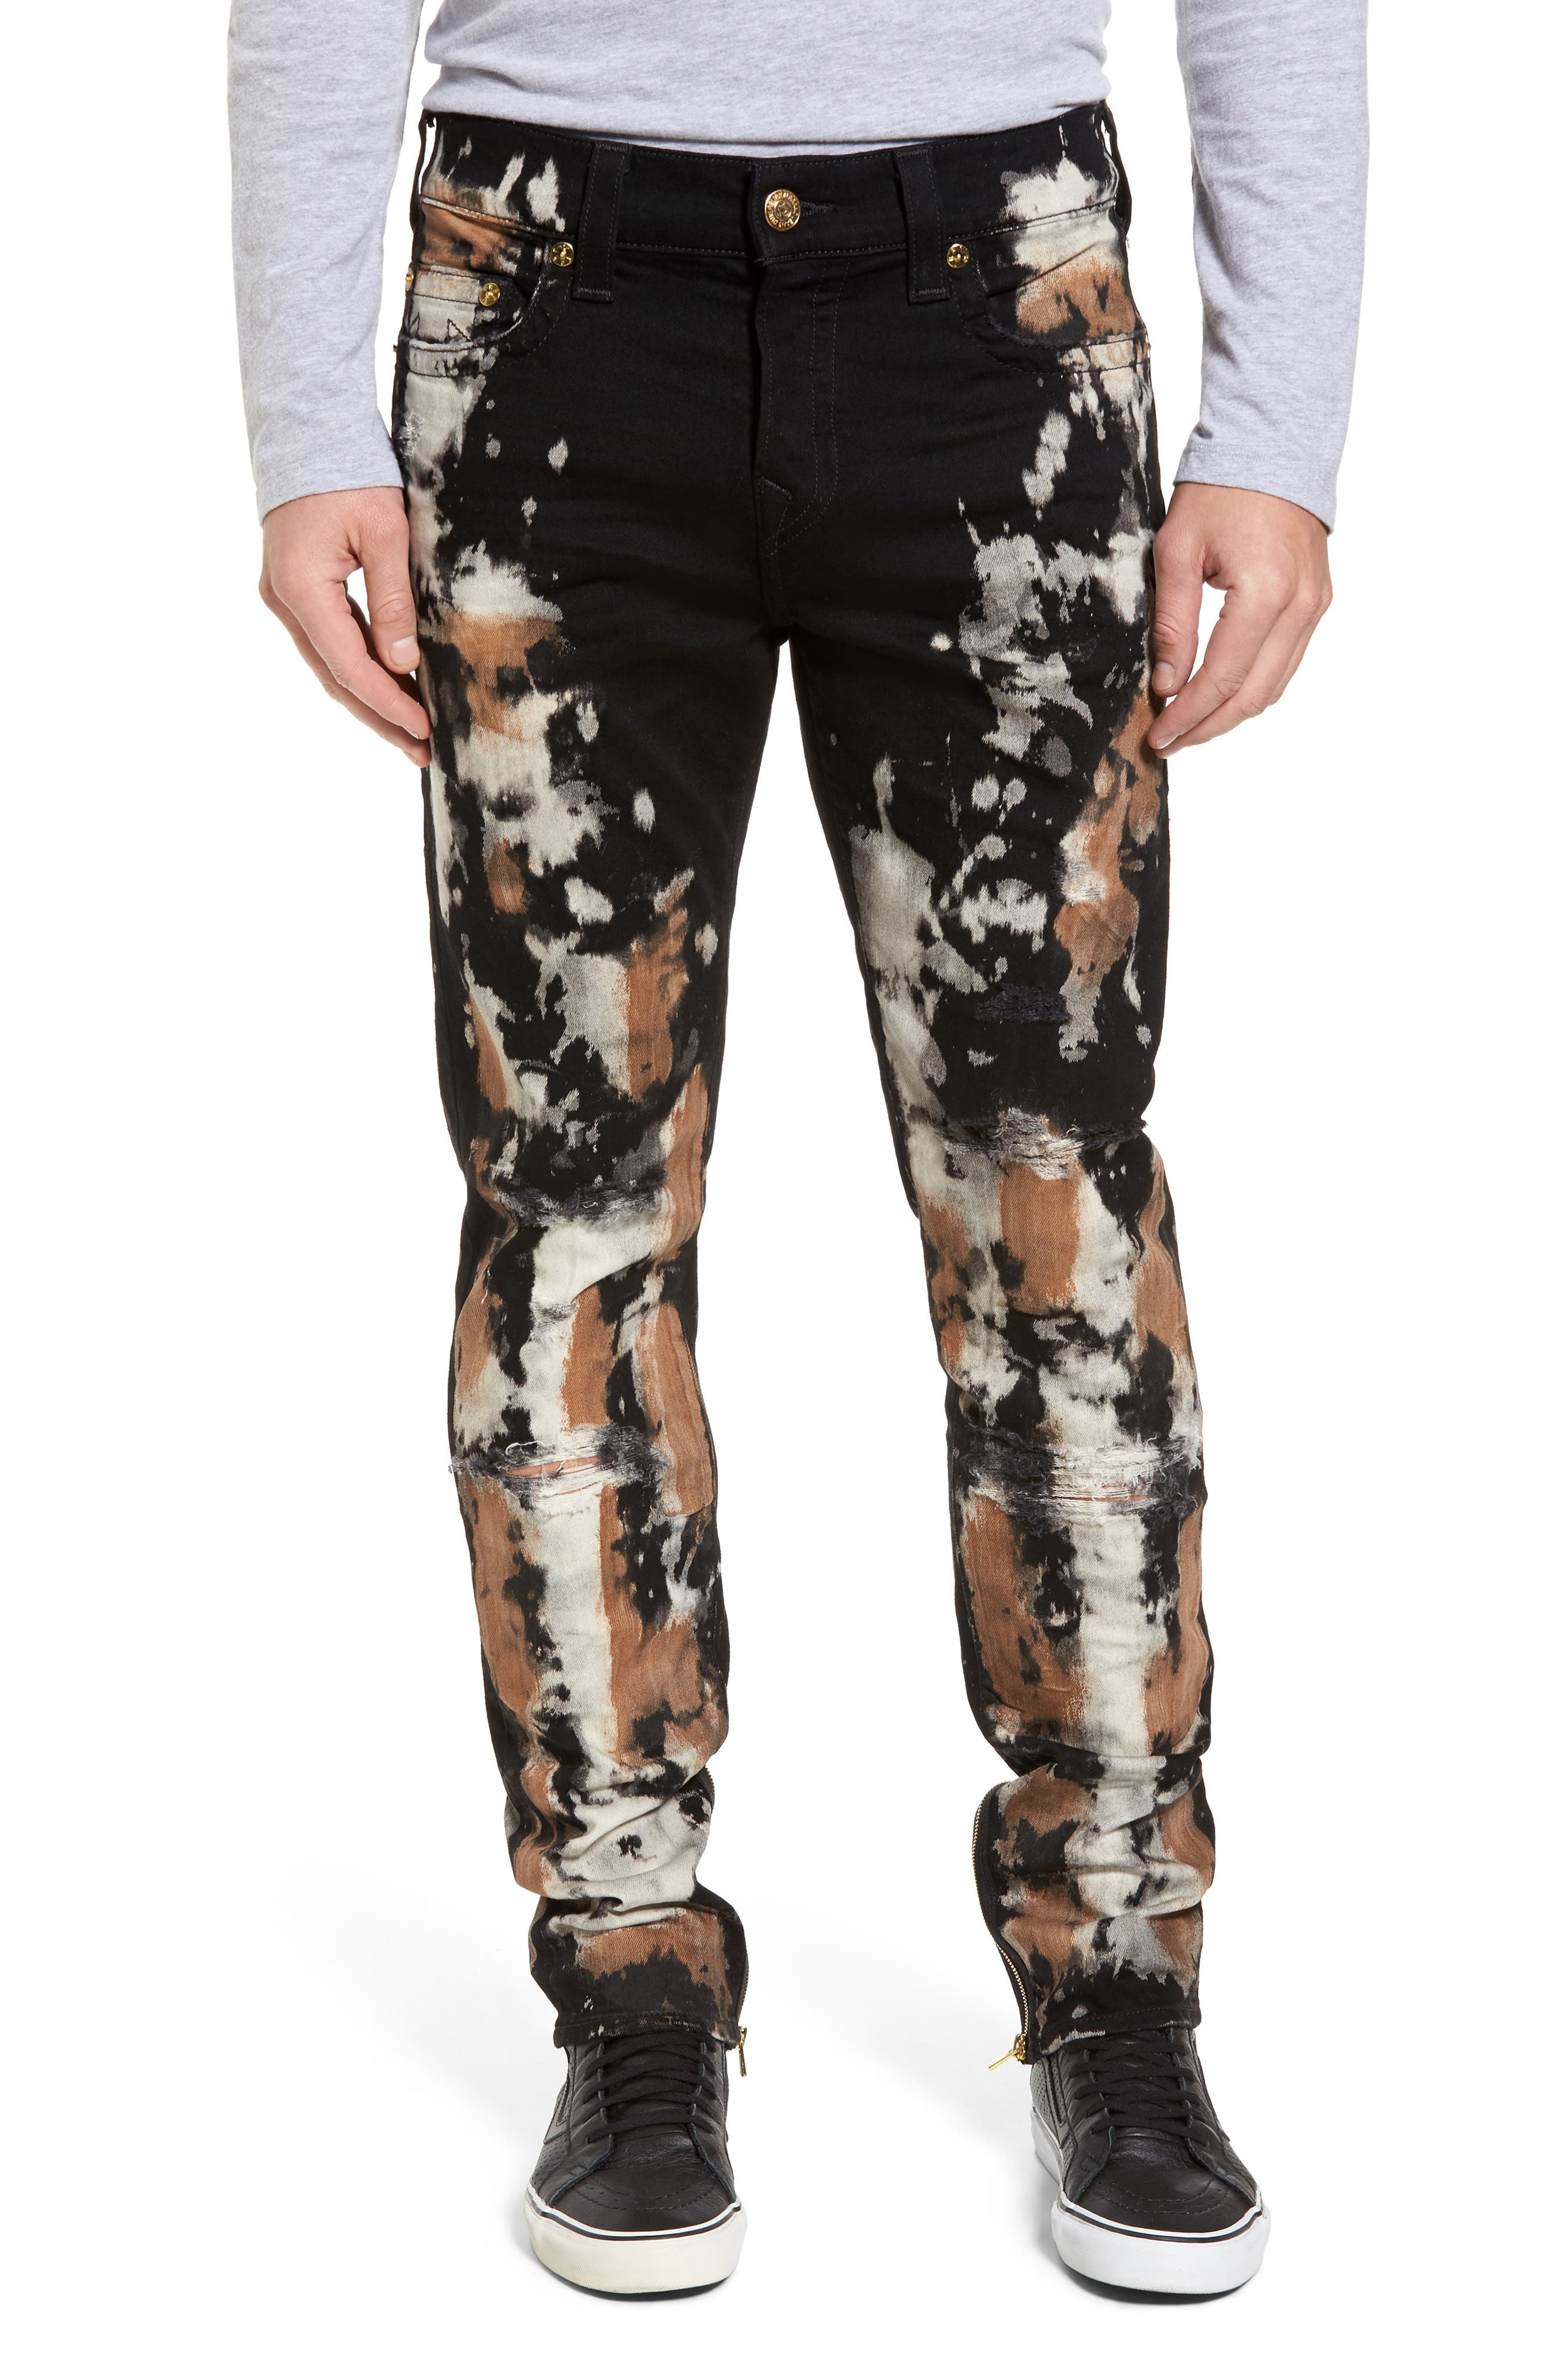 Rocco Skinny Fit Jeans,                             Main thumbnail 1, color,                             Worn Moon Storm